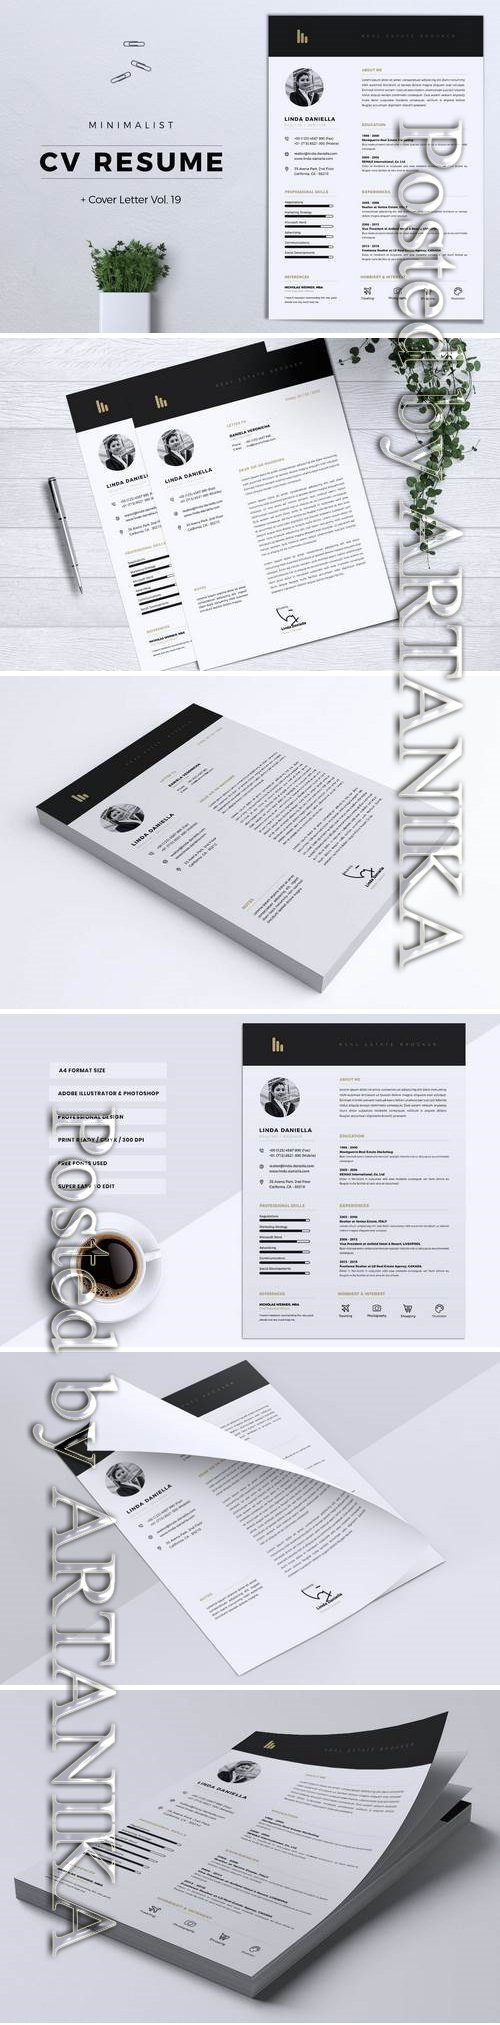 Minimalist CV Resume Vol. 19